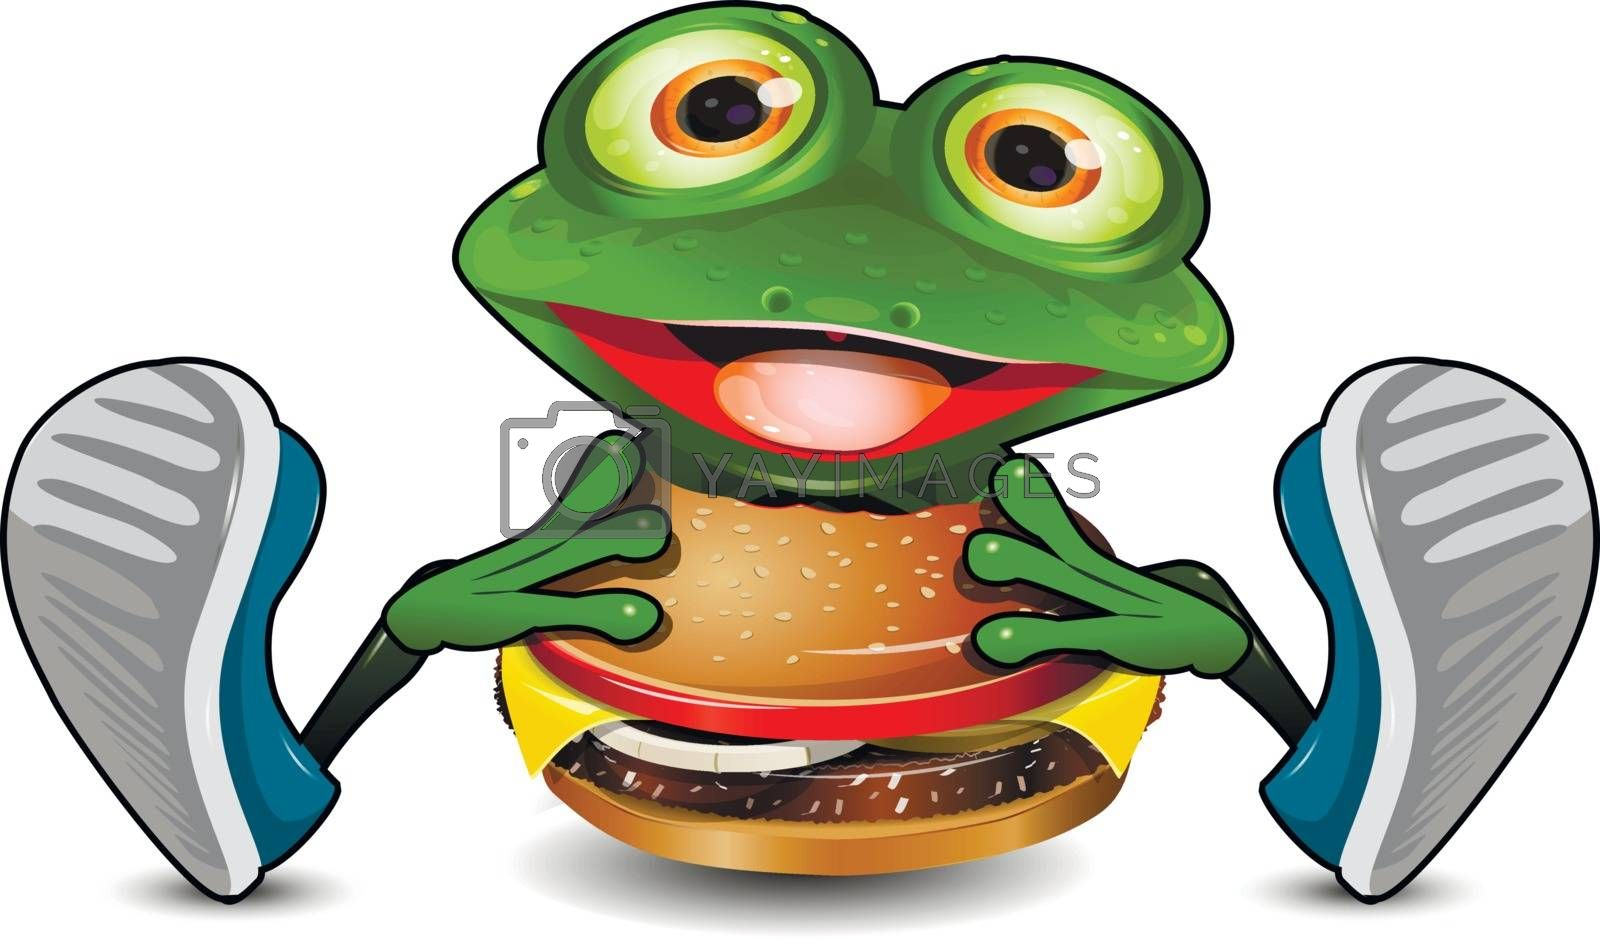 Illustration Cheerful Green Frog Eats Cheeseburger on a White Background